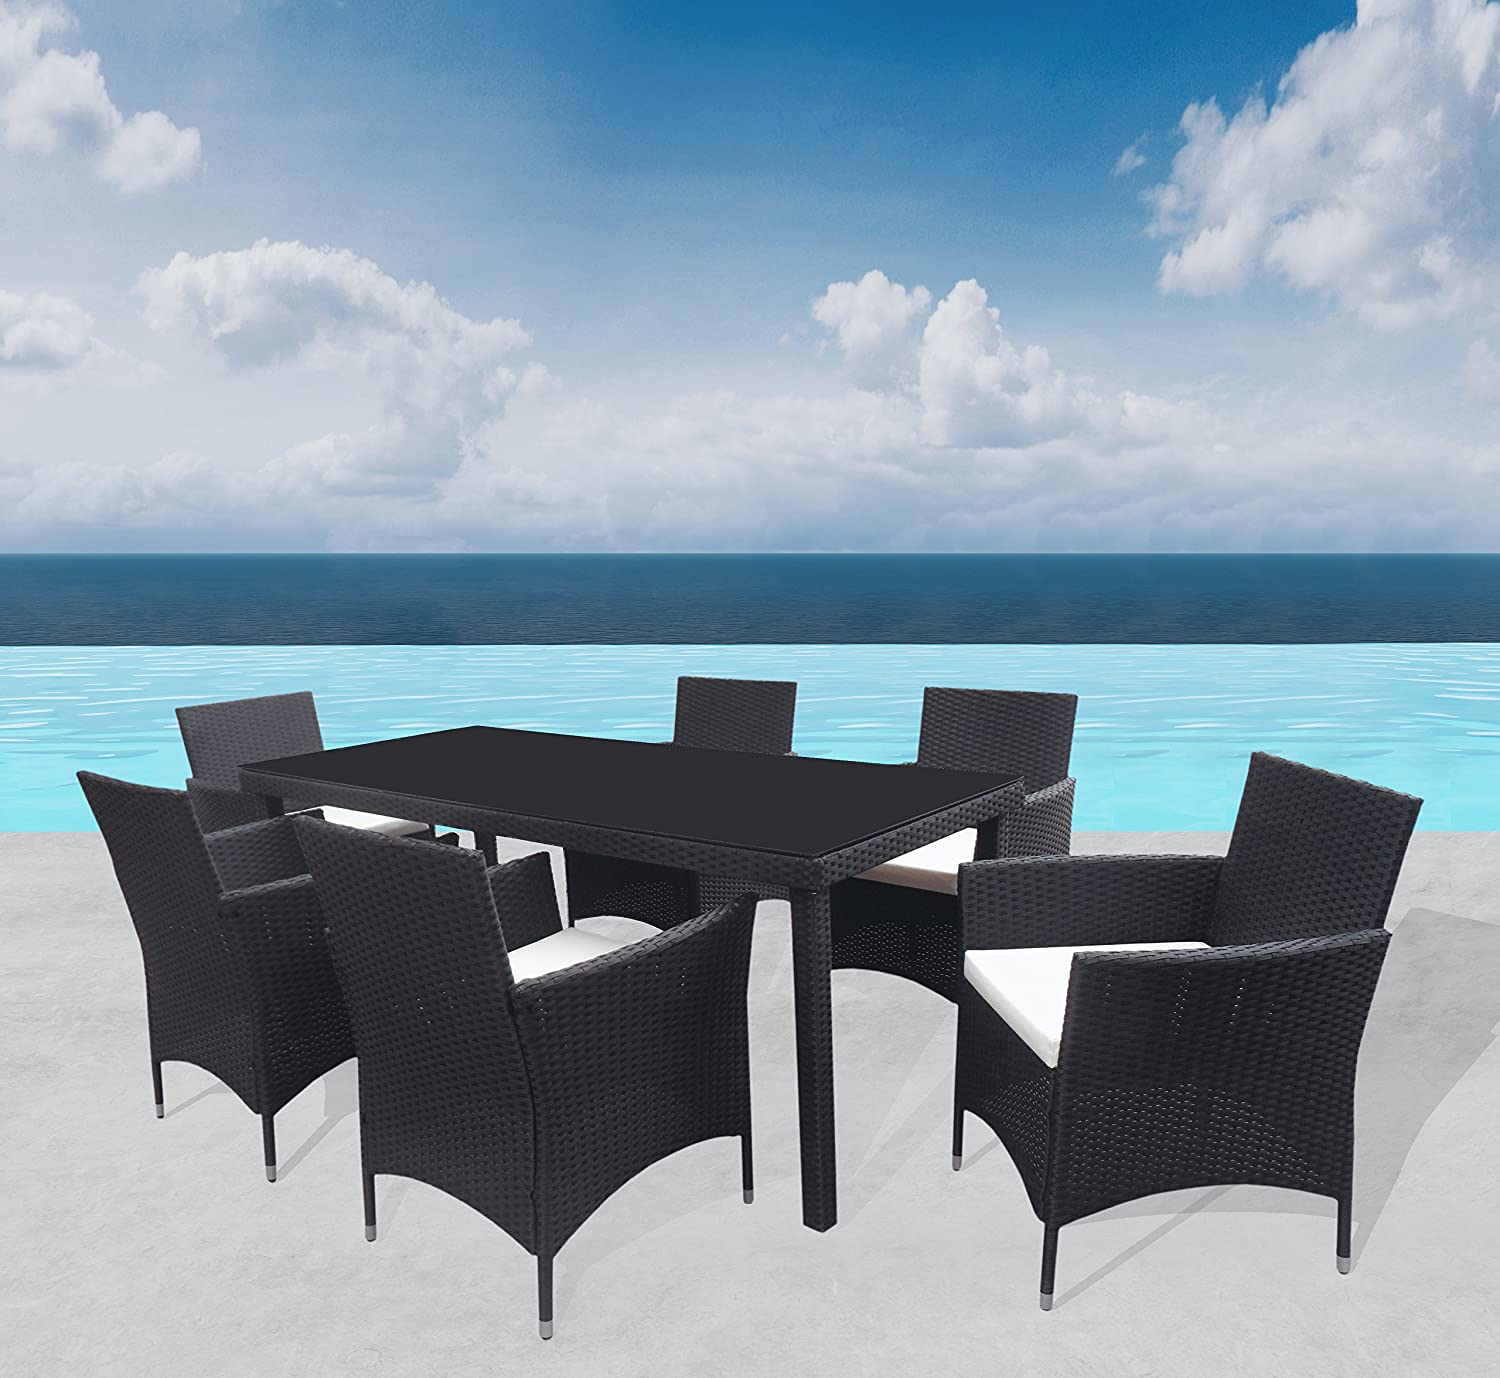 outdoor sitzgruppe milano lounge schwarz gartenset sofa. Black Bedroom Furniture Sets. Home Design Ideas